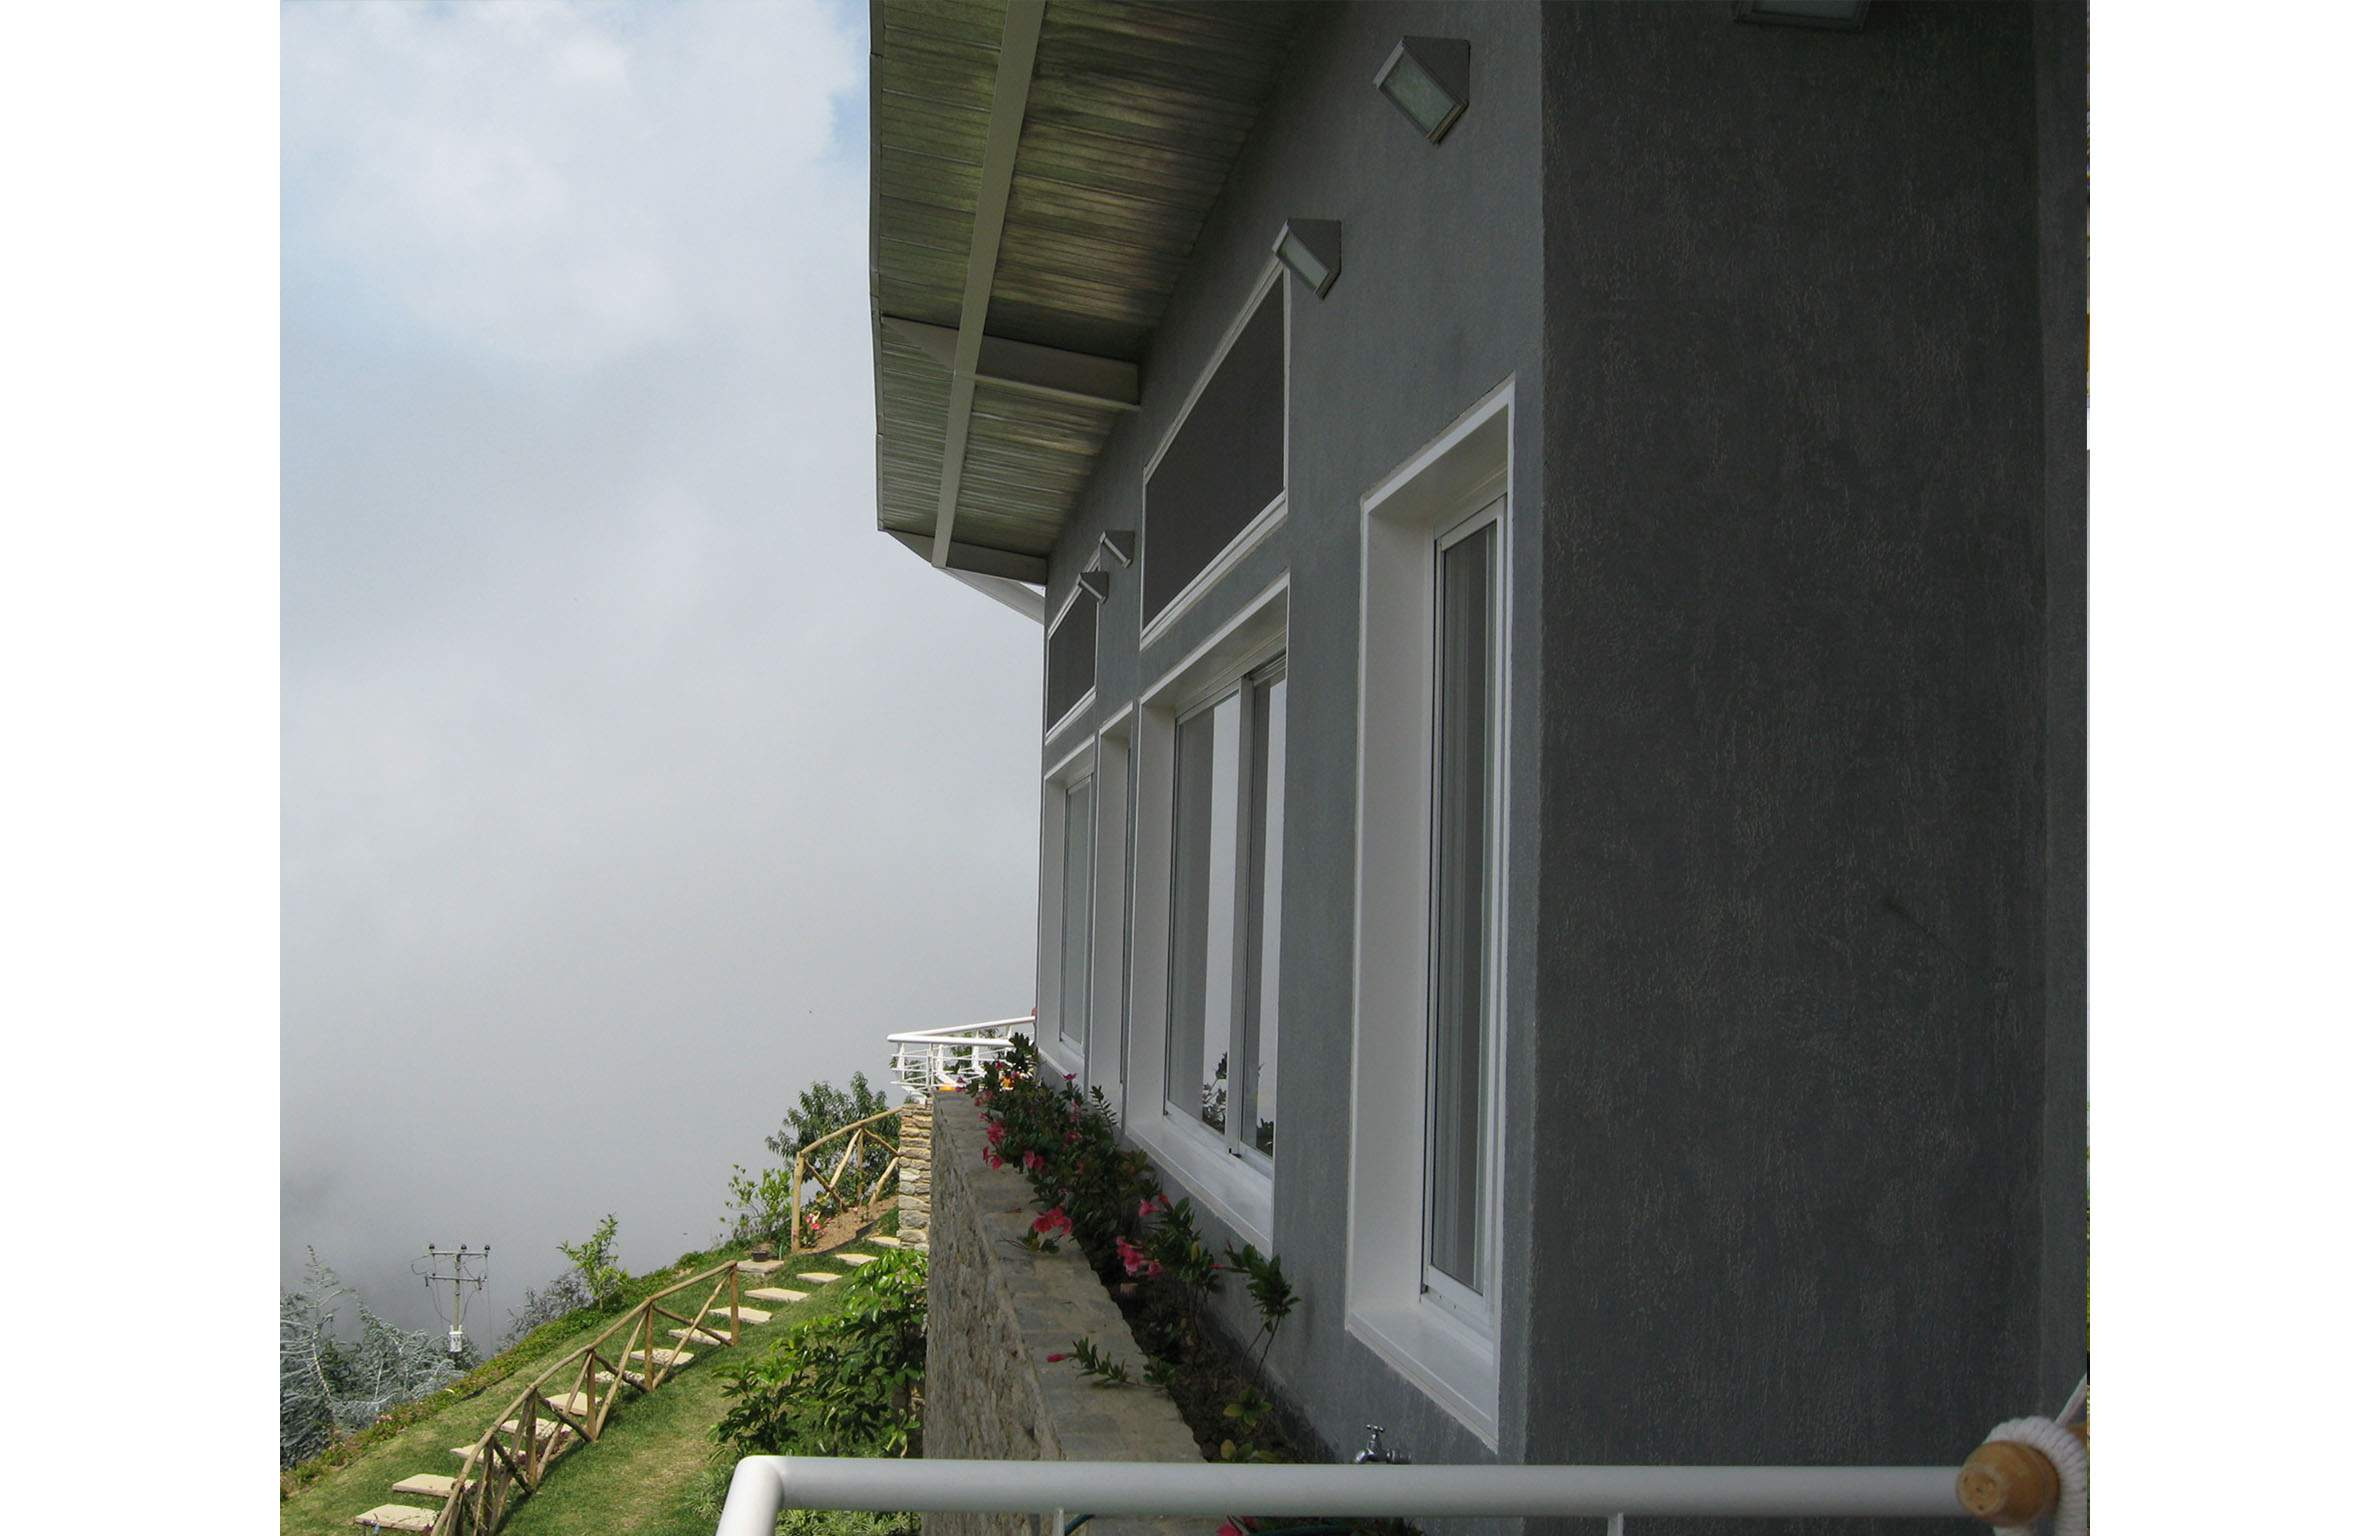 Exterior Architecture side view project in Galipan El Avila, Venezuela